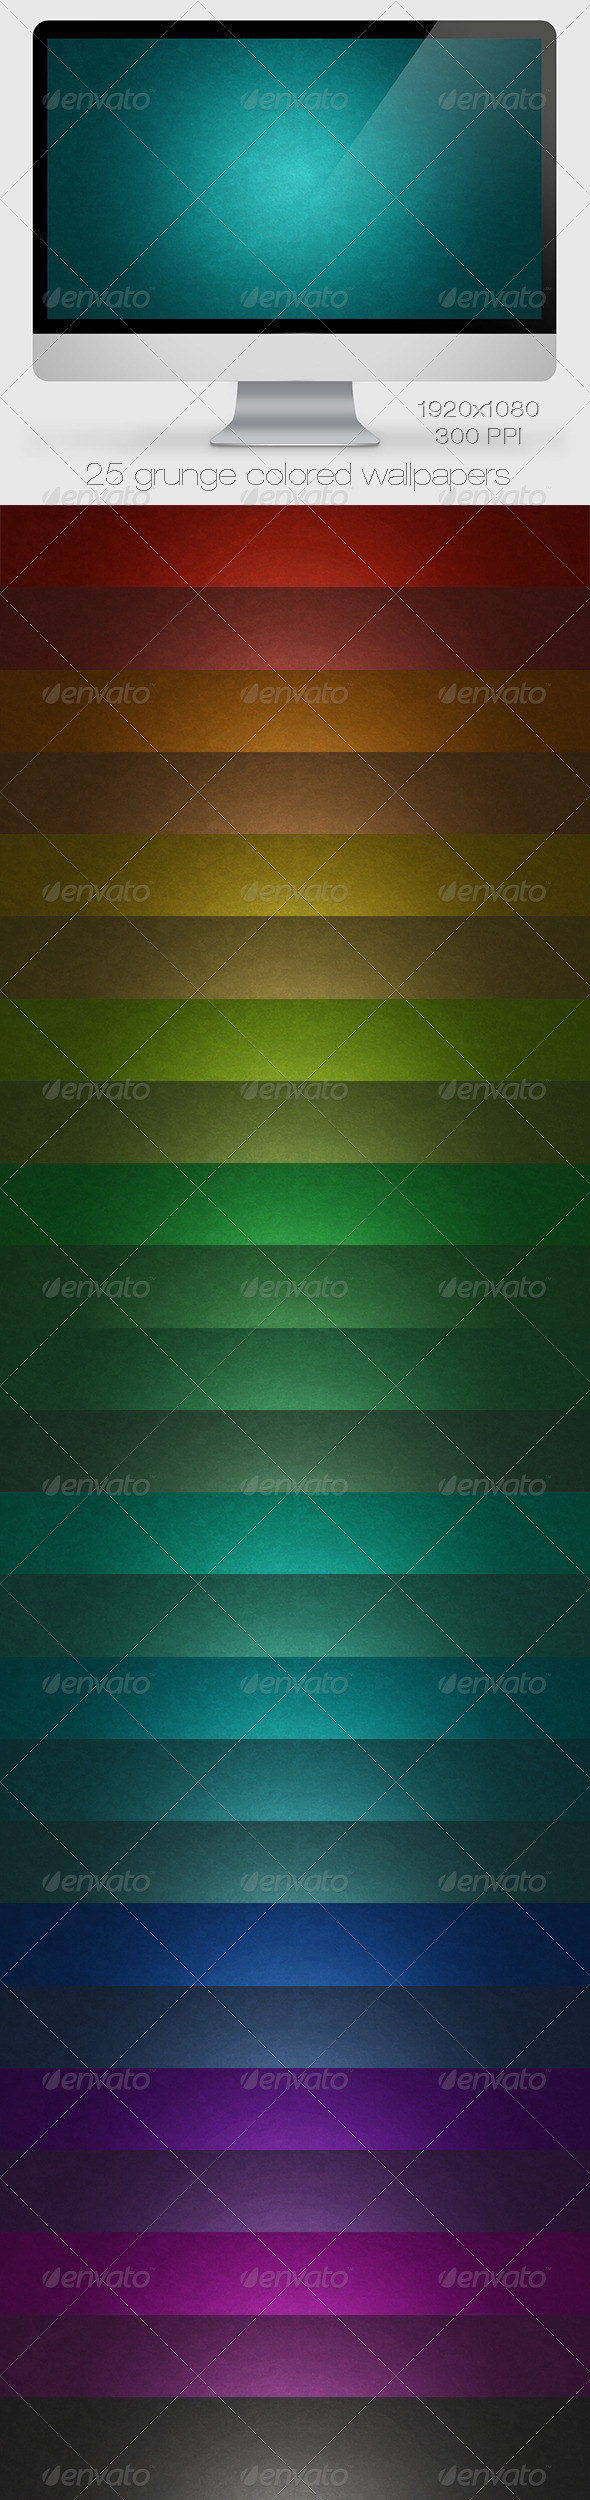 GraphicRiver 25 Grunge Colored Wallpapers Backgrounds 6786229